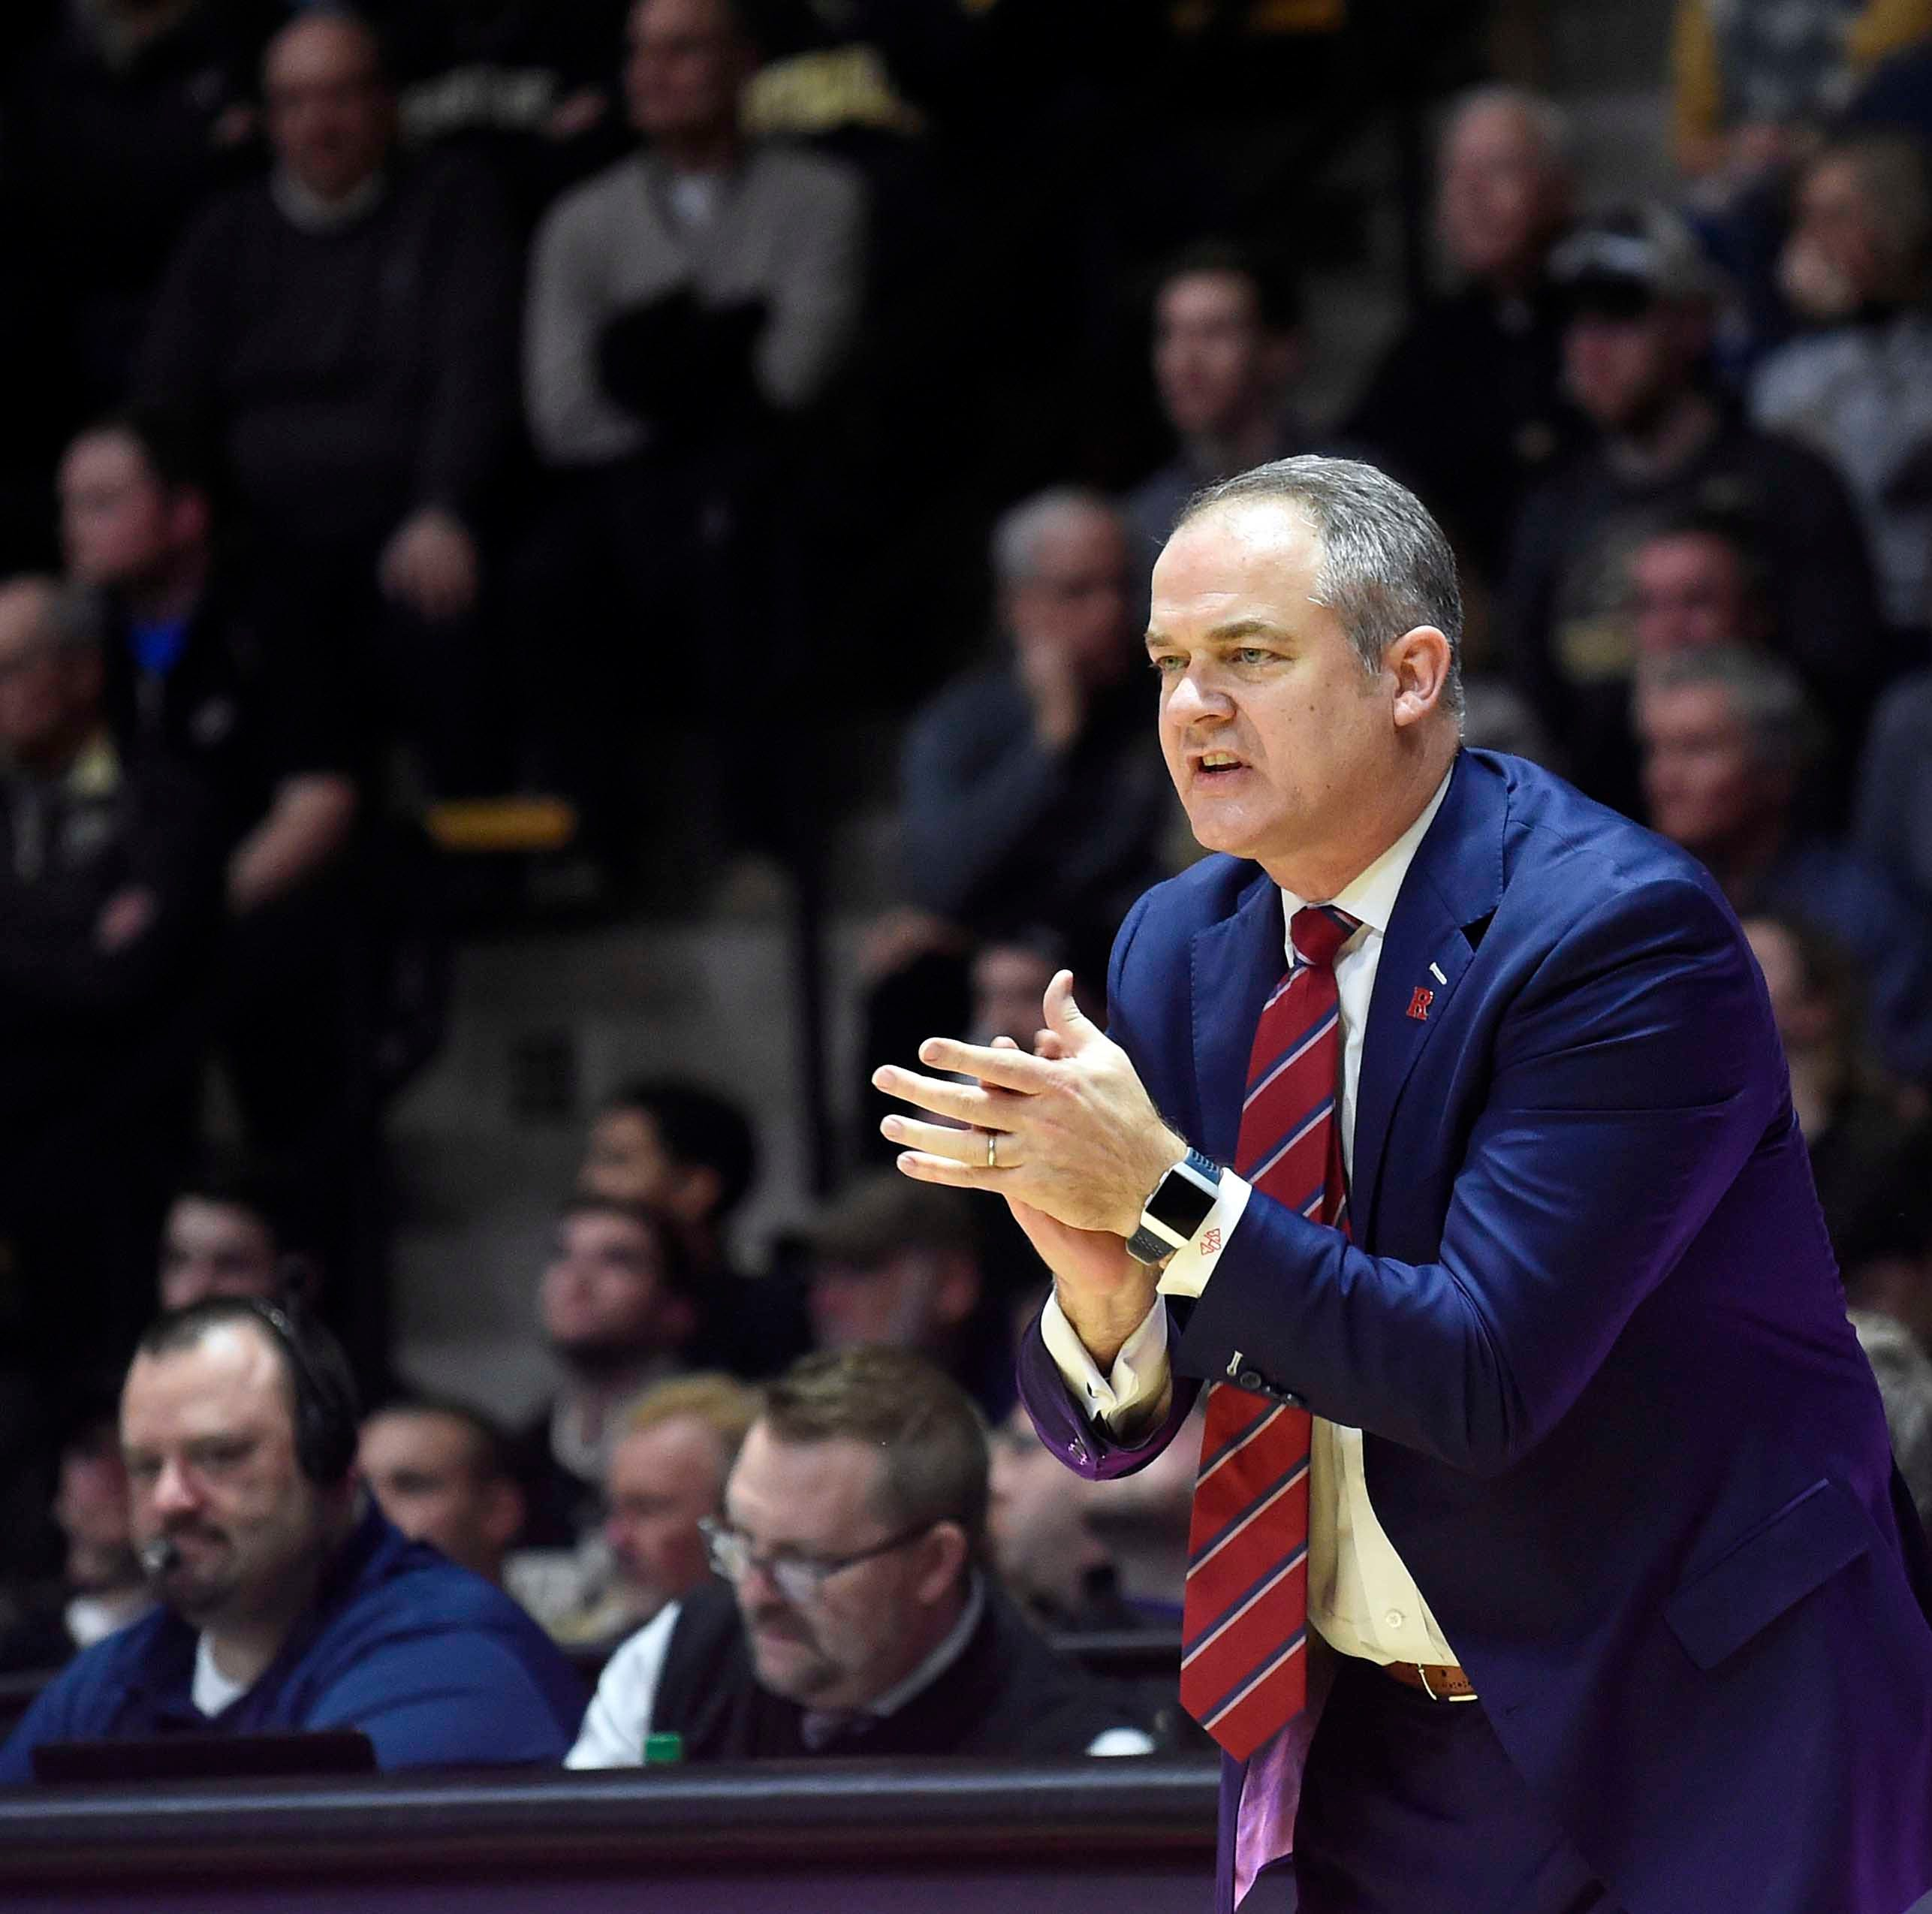 Rutgers basketball: 'I'm the right coach,' Pikiell says after rough road swing